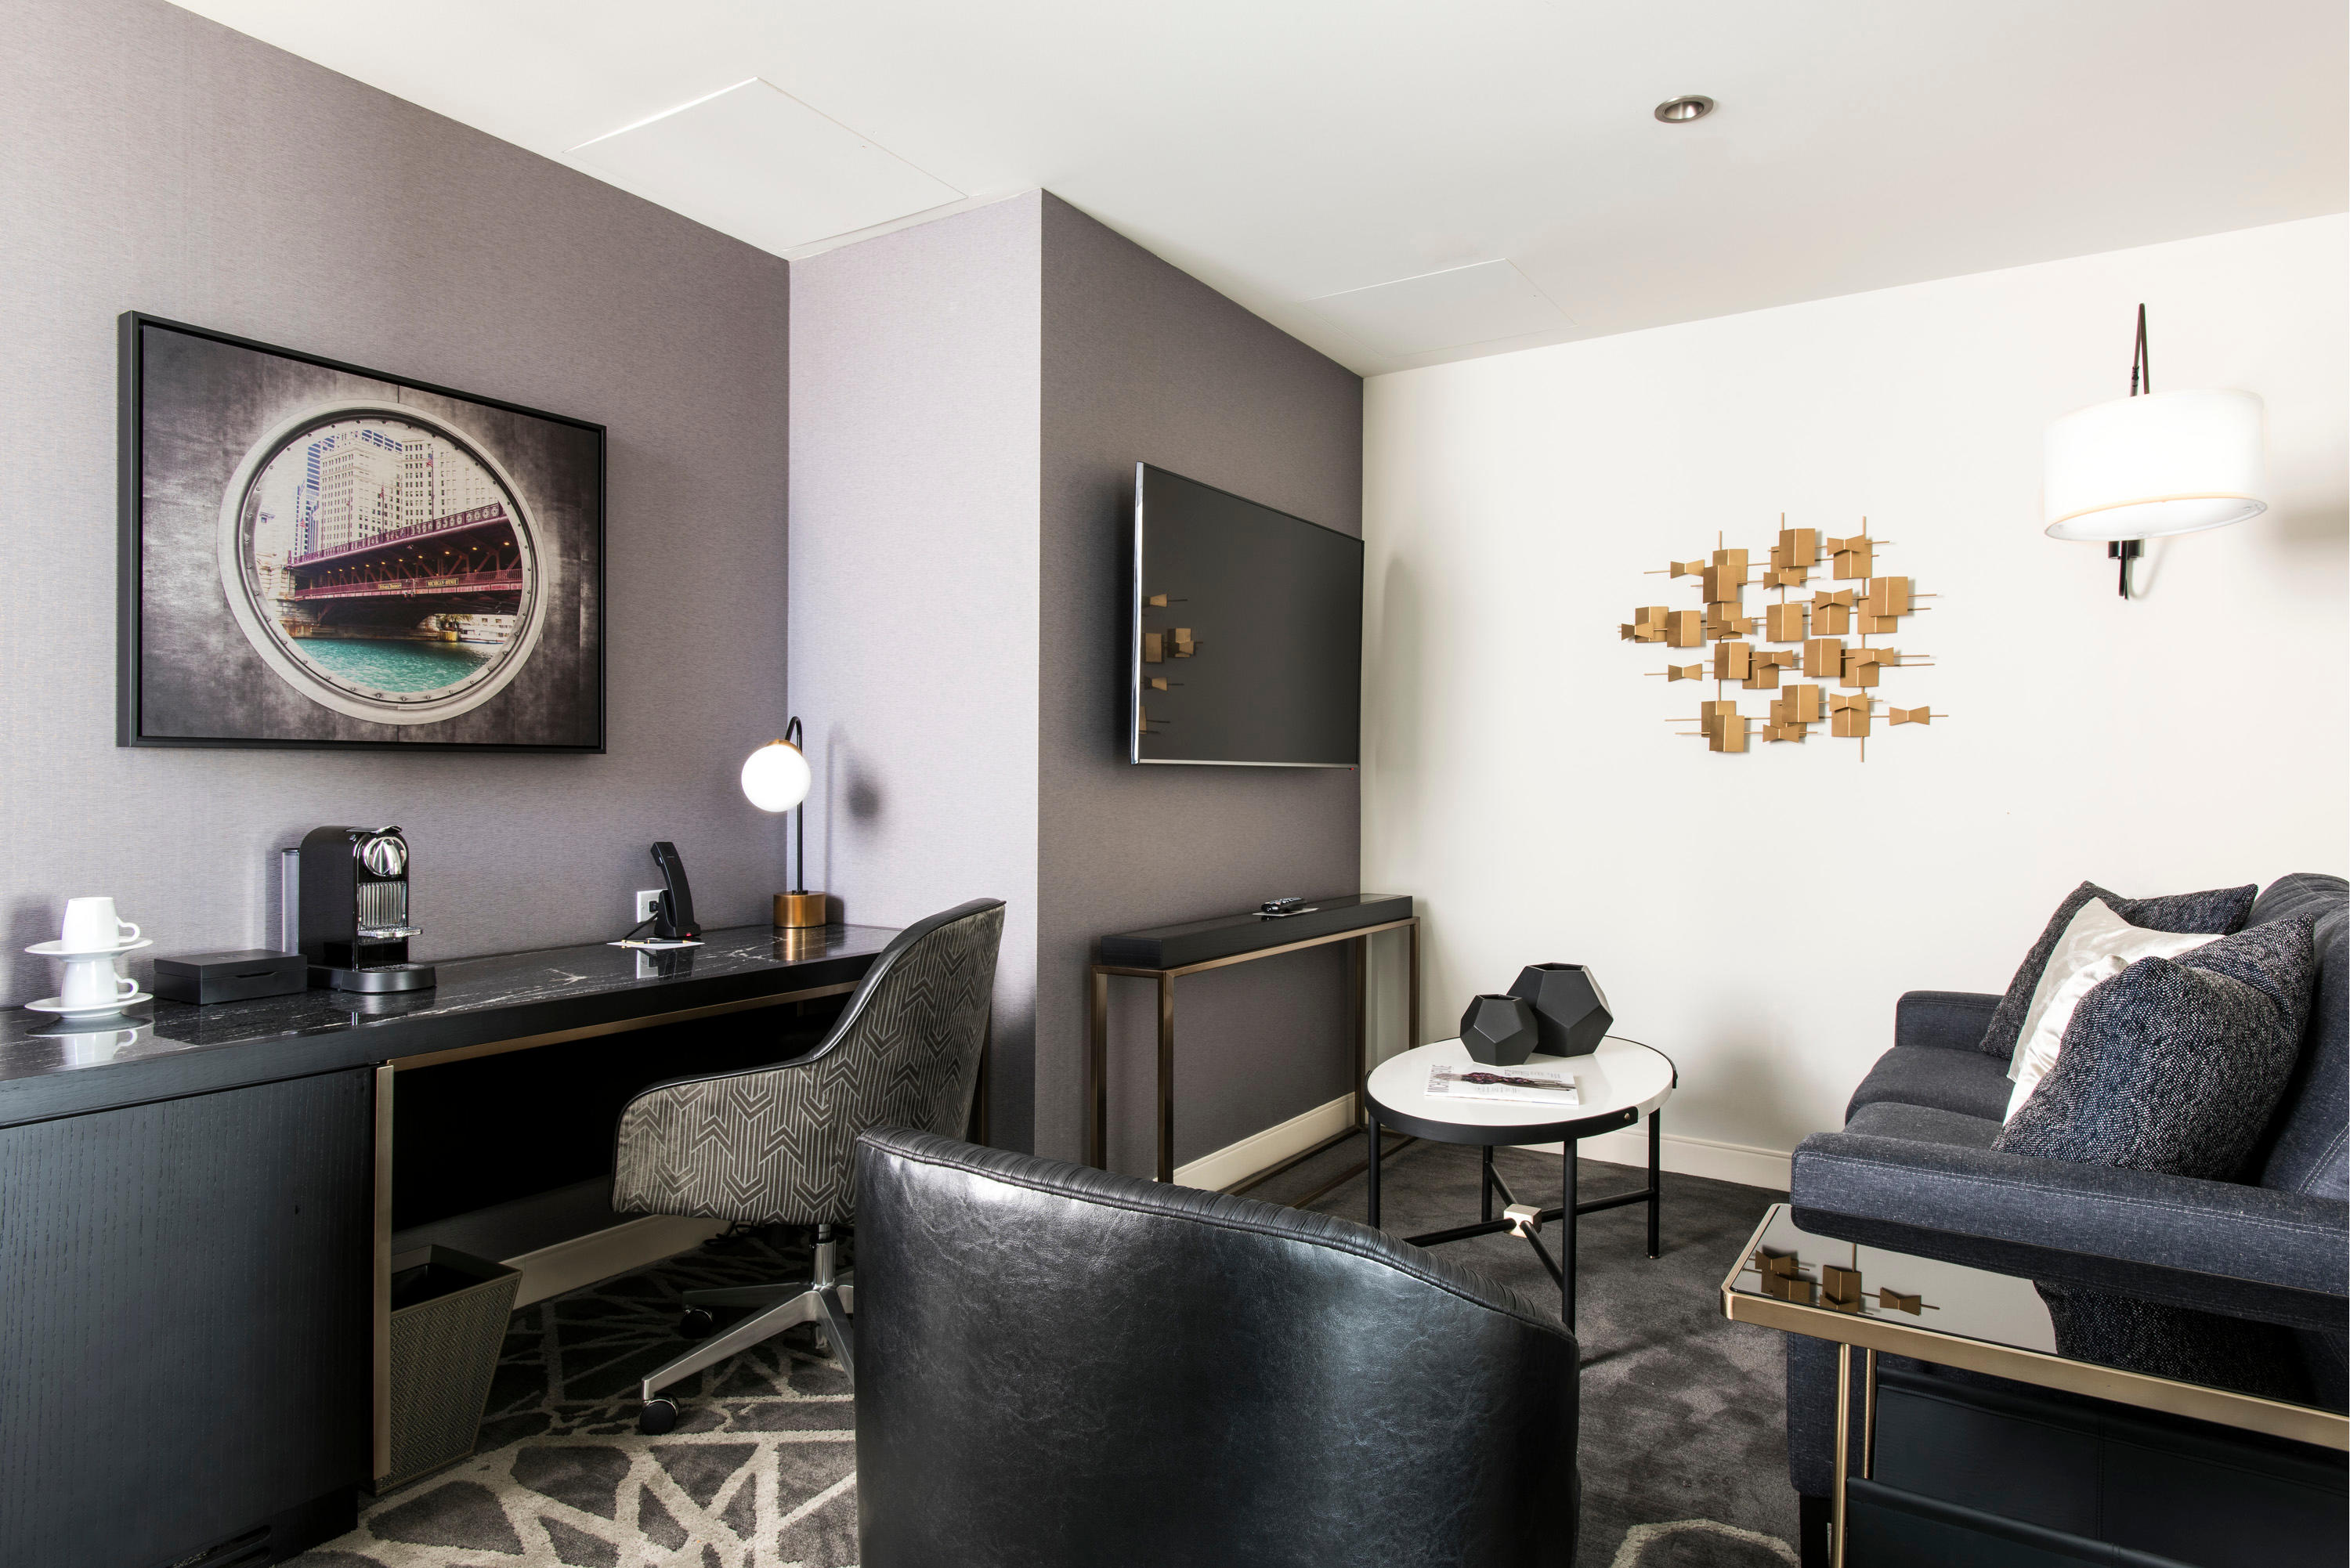 LondonHouse Chicago, Curio Collection by Hilton image 3